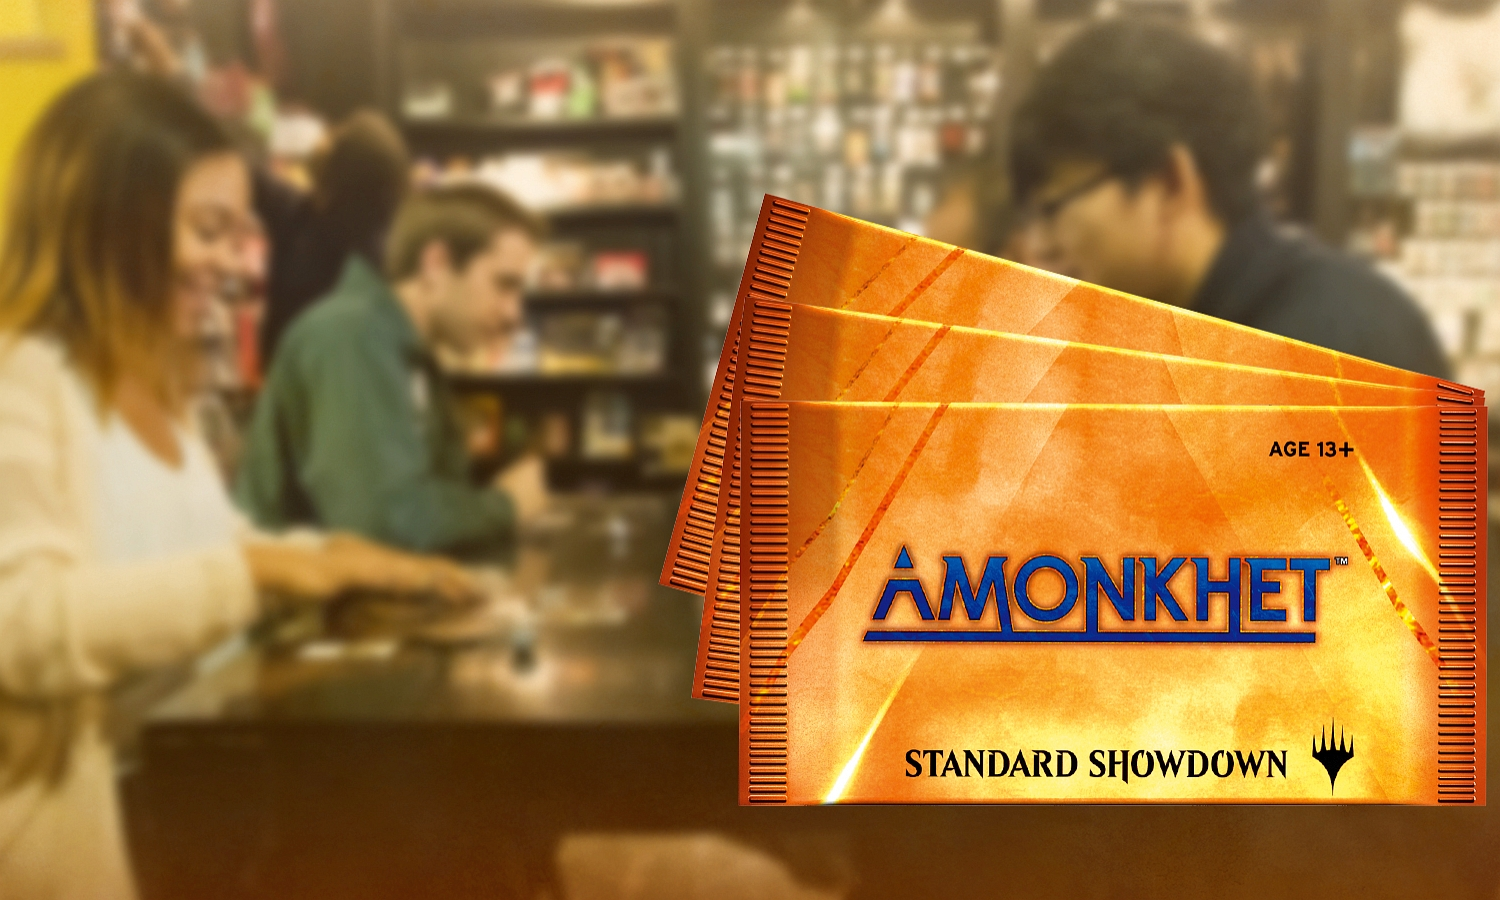 Amonkhet Standard Showdown